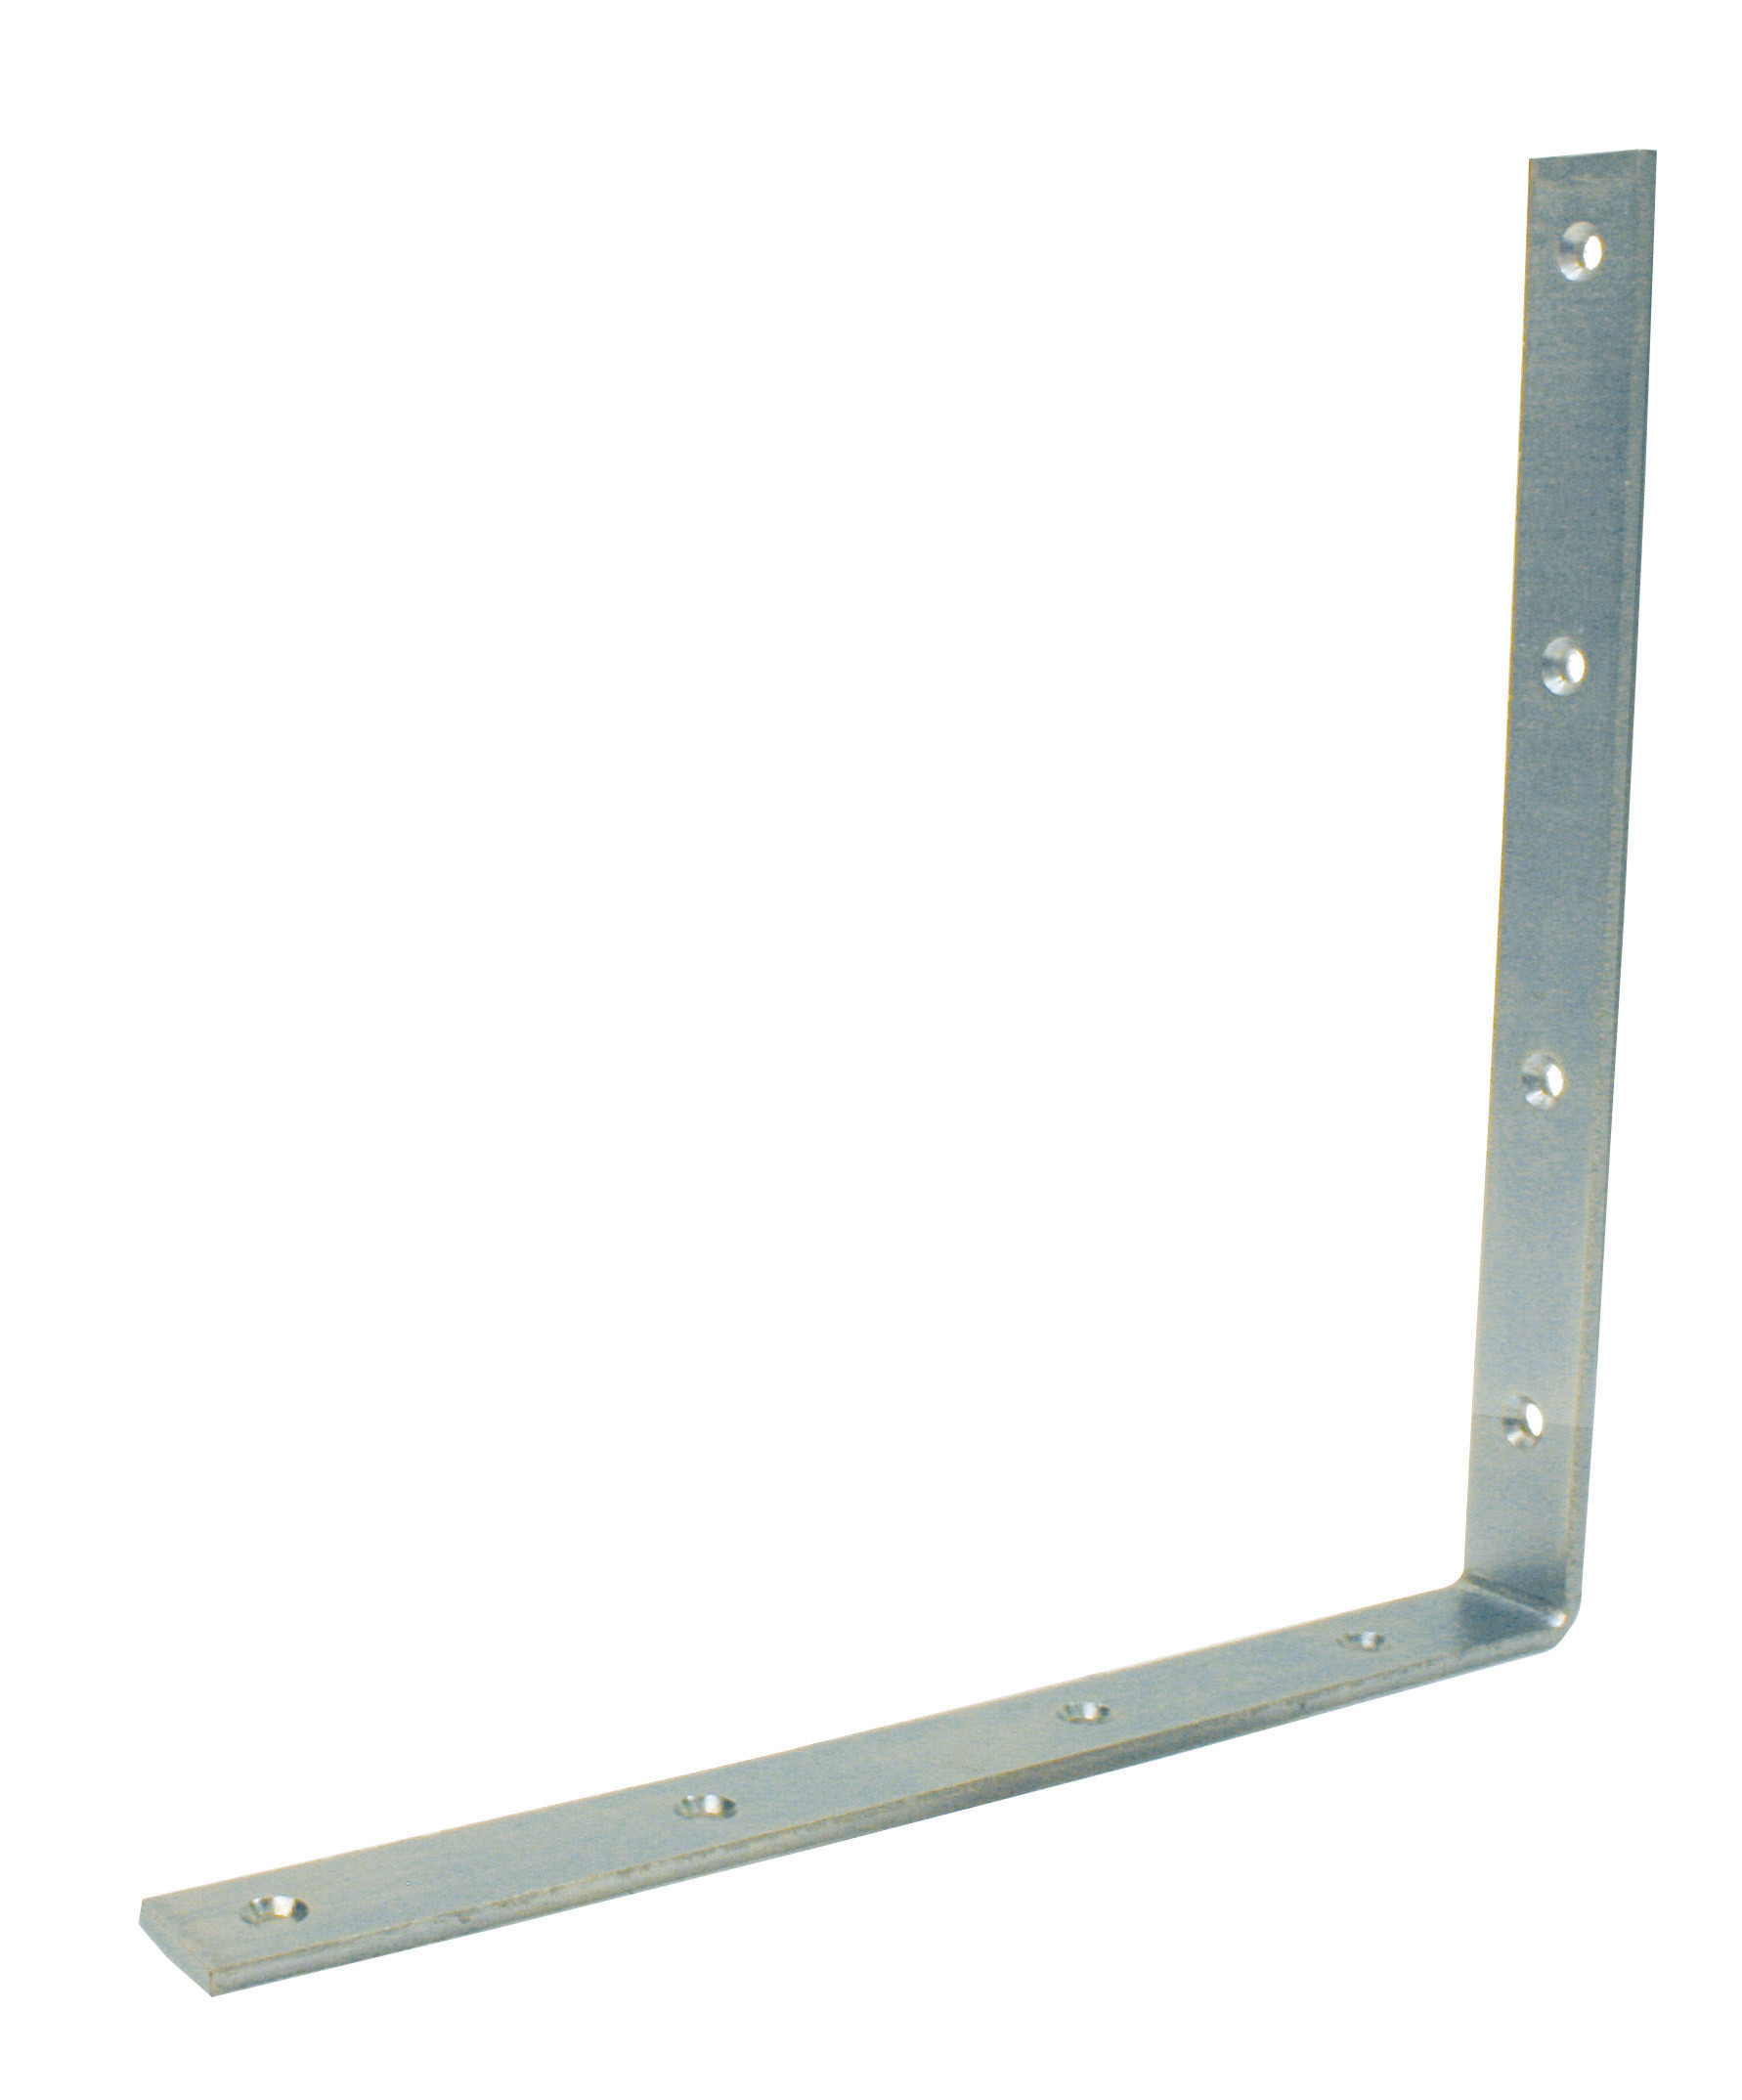 Angle bracket heavy duty 300x300 30x6 TV